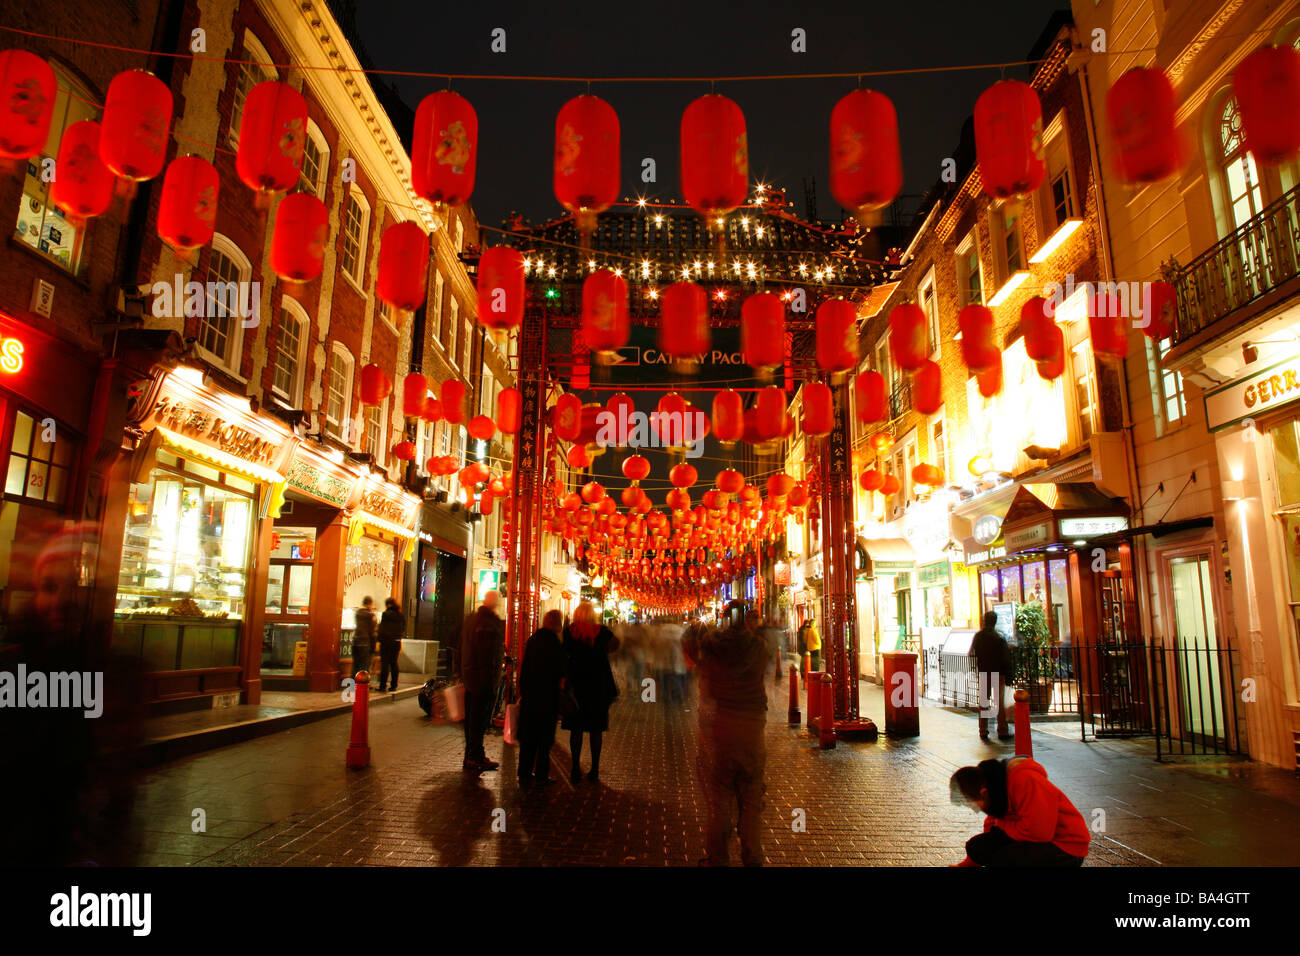 Chinese New Year in Gerrard Street, Chinatown, London ...